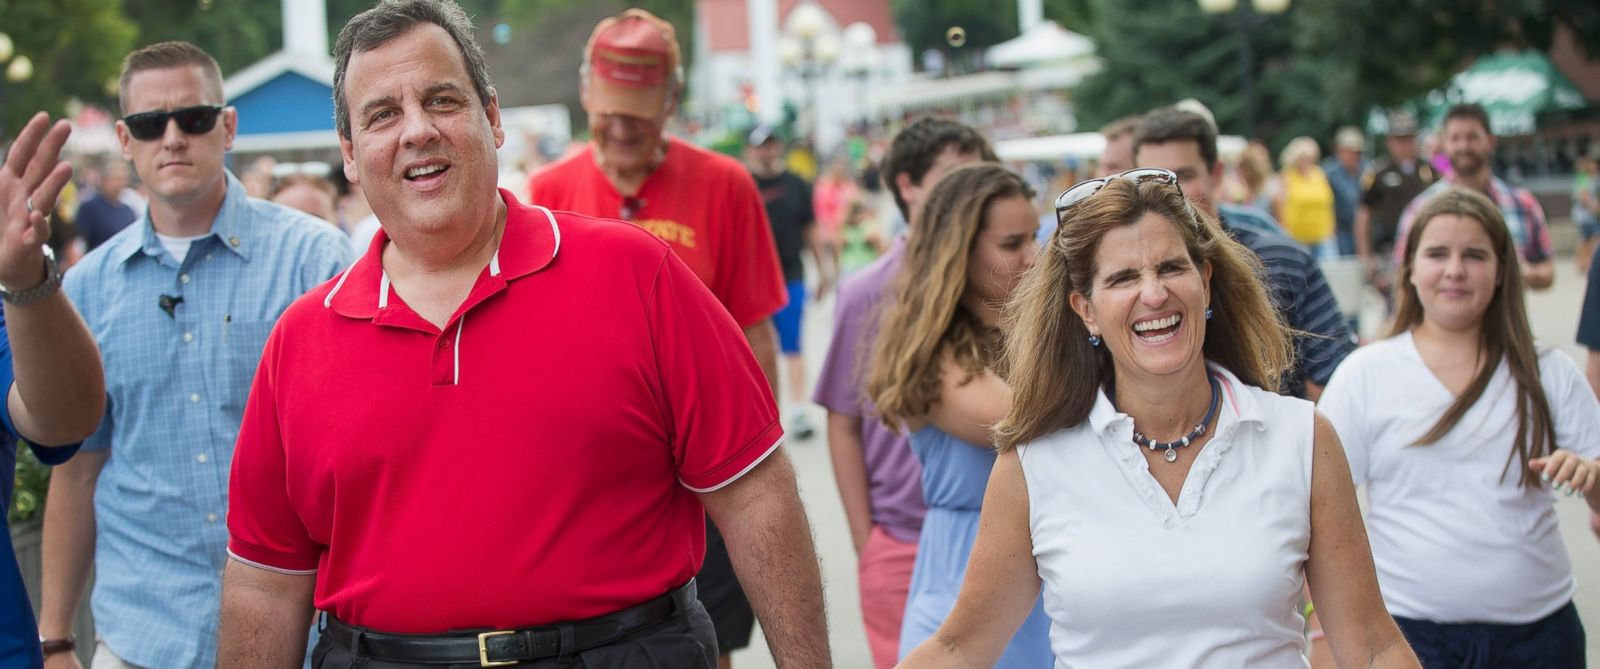 PHOTO: Republican presidential candidate New Jersey Governor Chris Christie and his wife Mary Pat Foster tour the Iowa State Fair on Aug. 22, 2015 in Des Moines, Iowa.